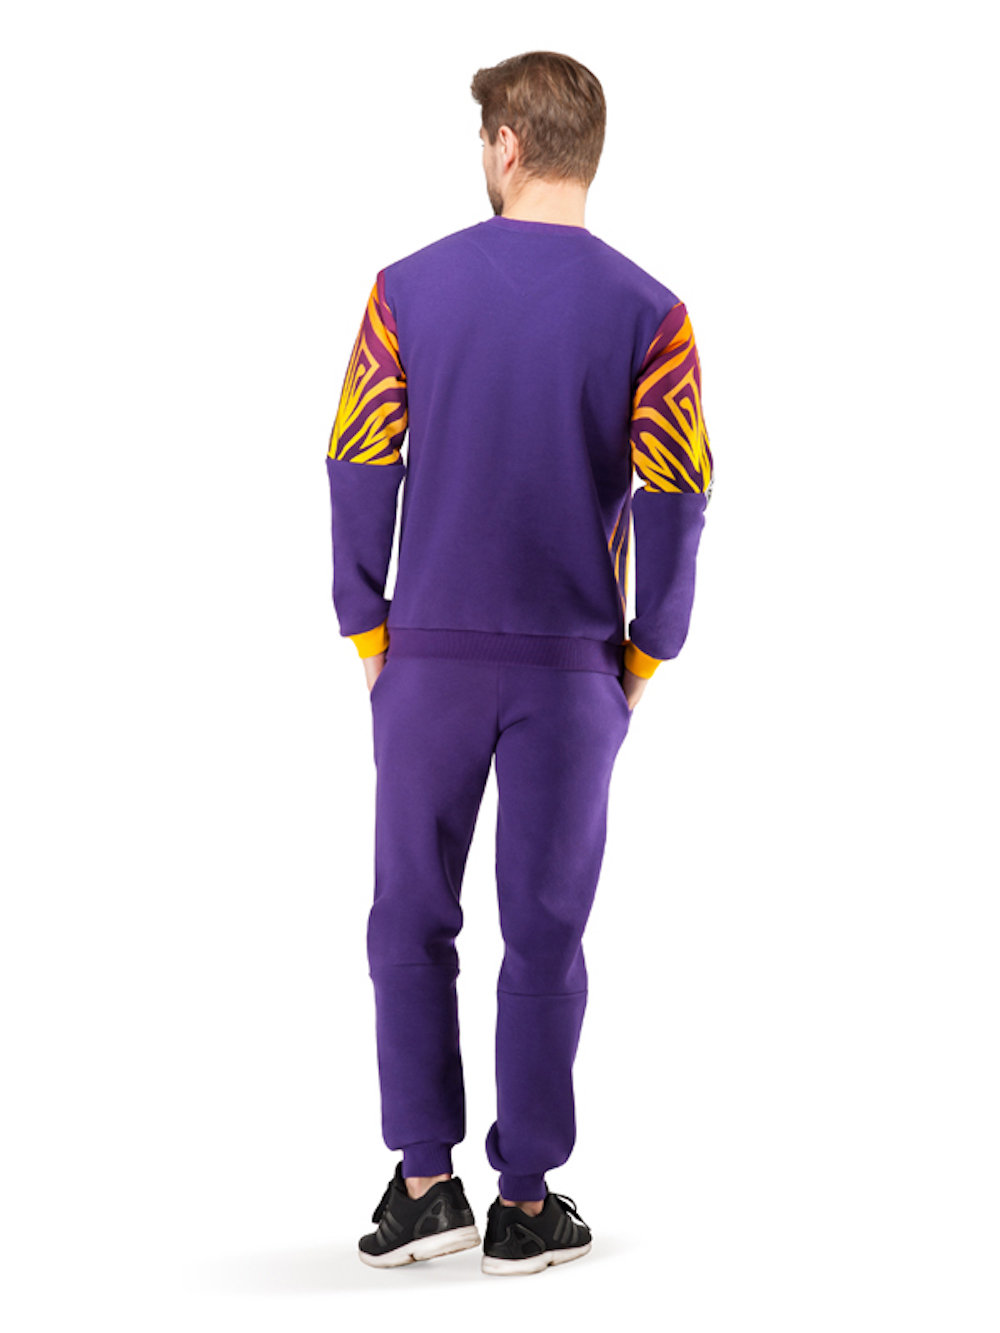 Mercury Sweatshirt (Purple) - Okuaku